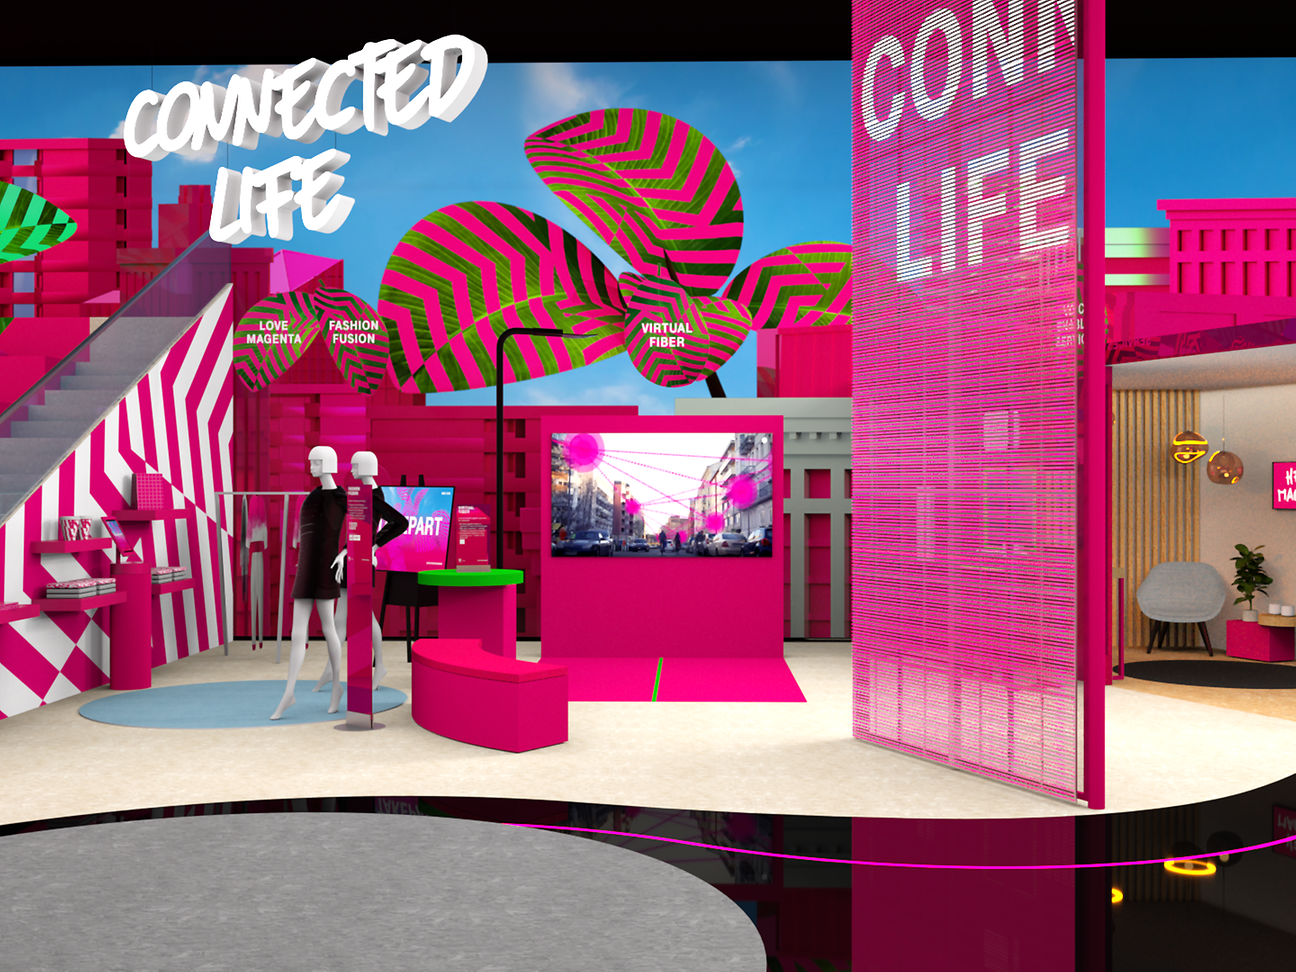 MWC 2019 Deutsche Telekom brings connectivity to life